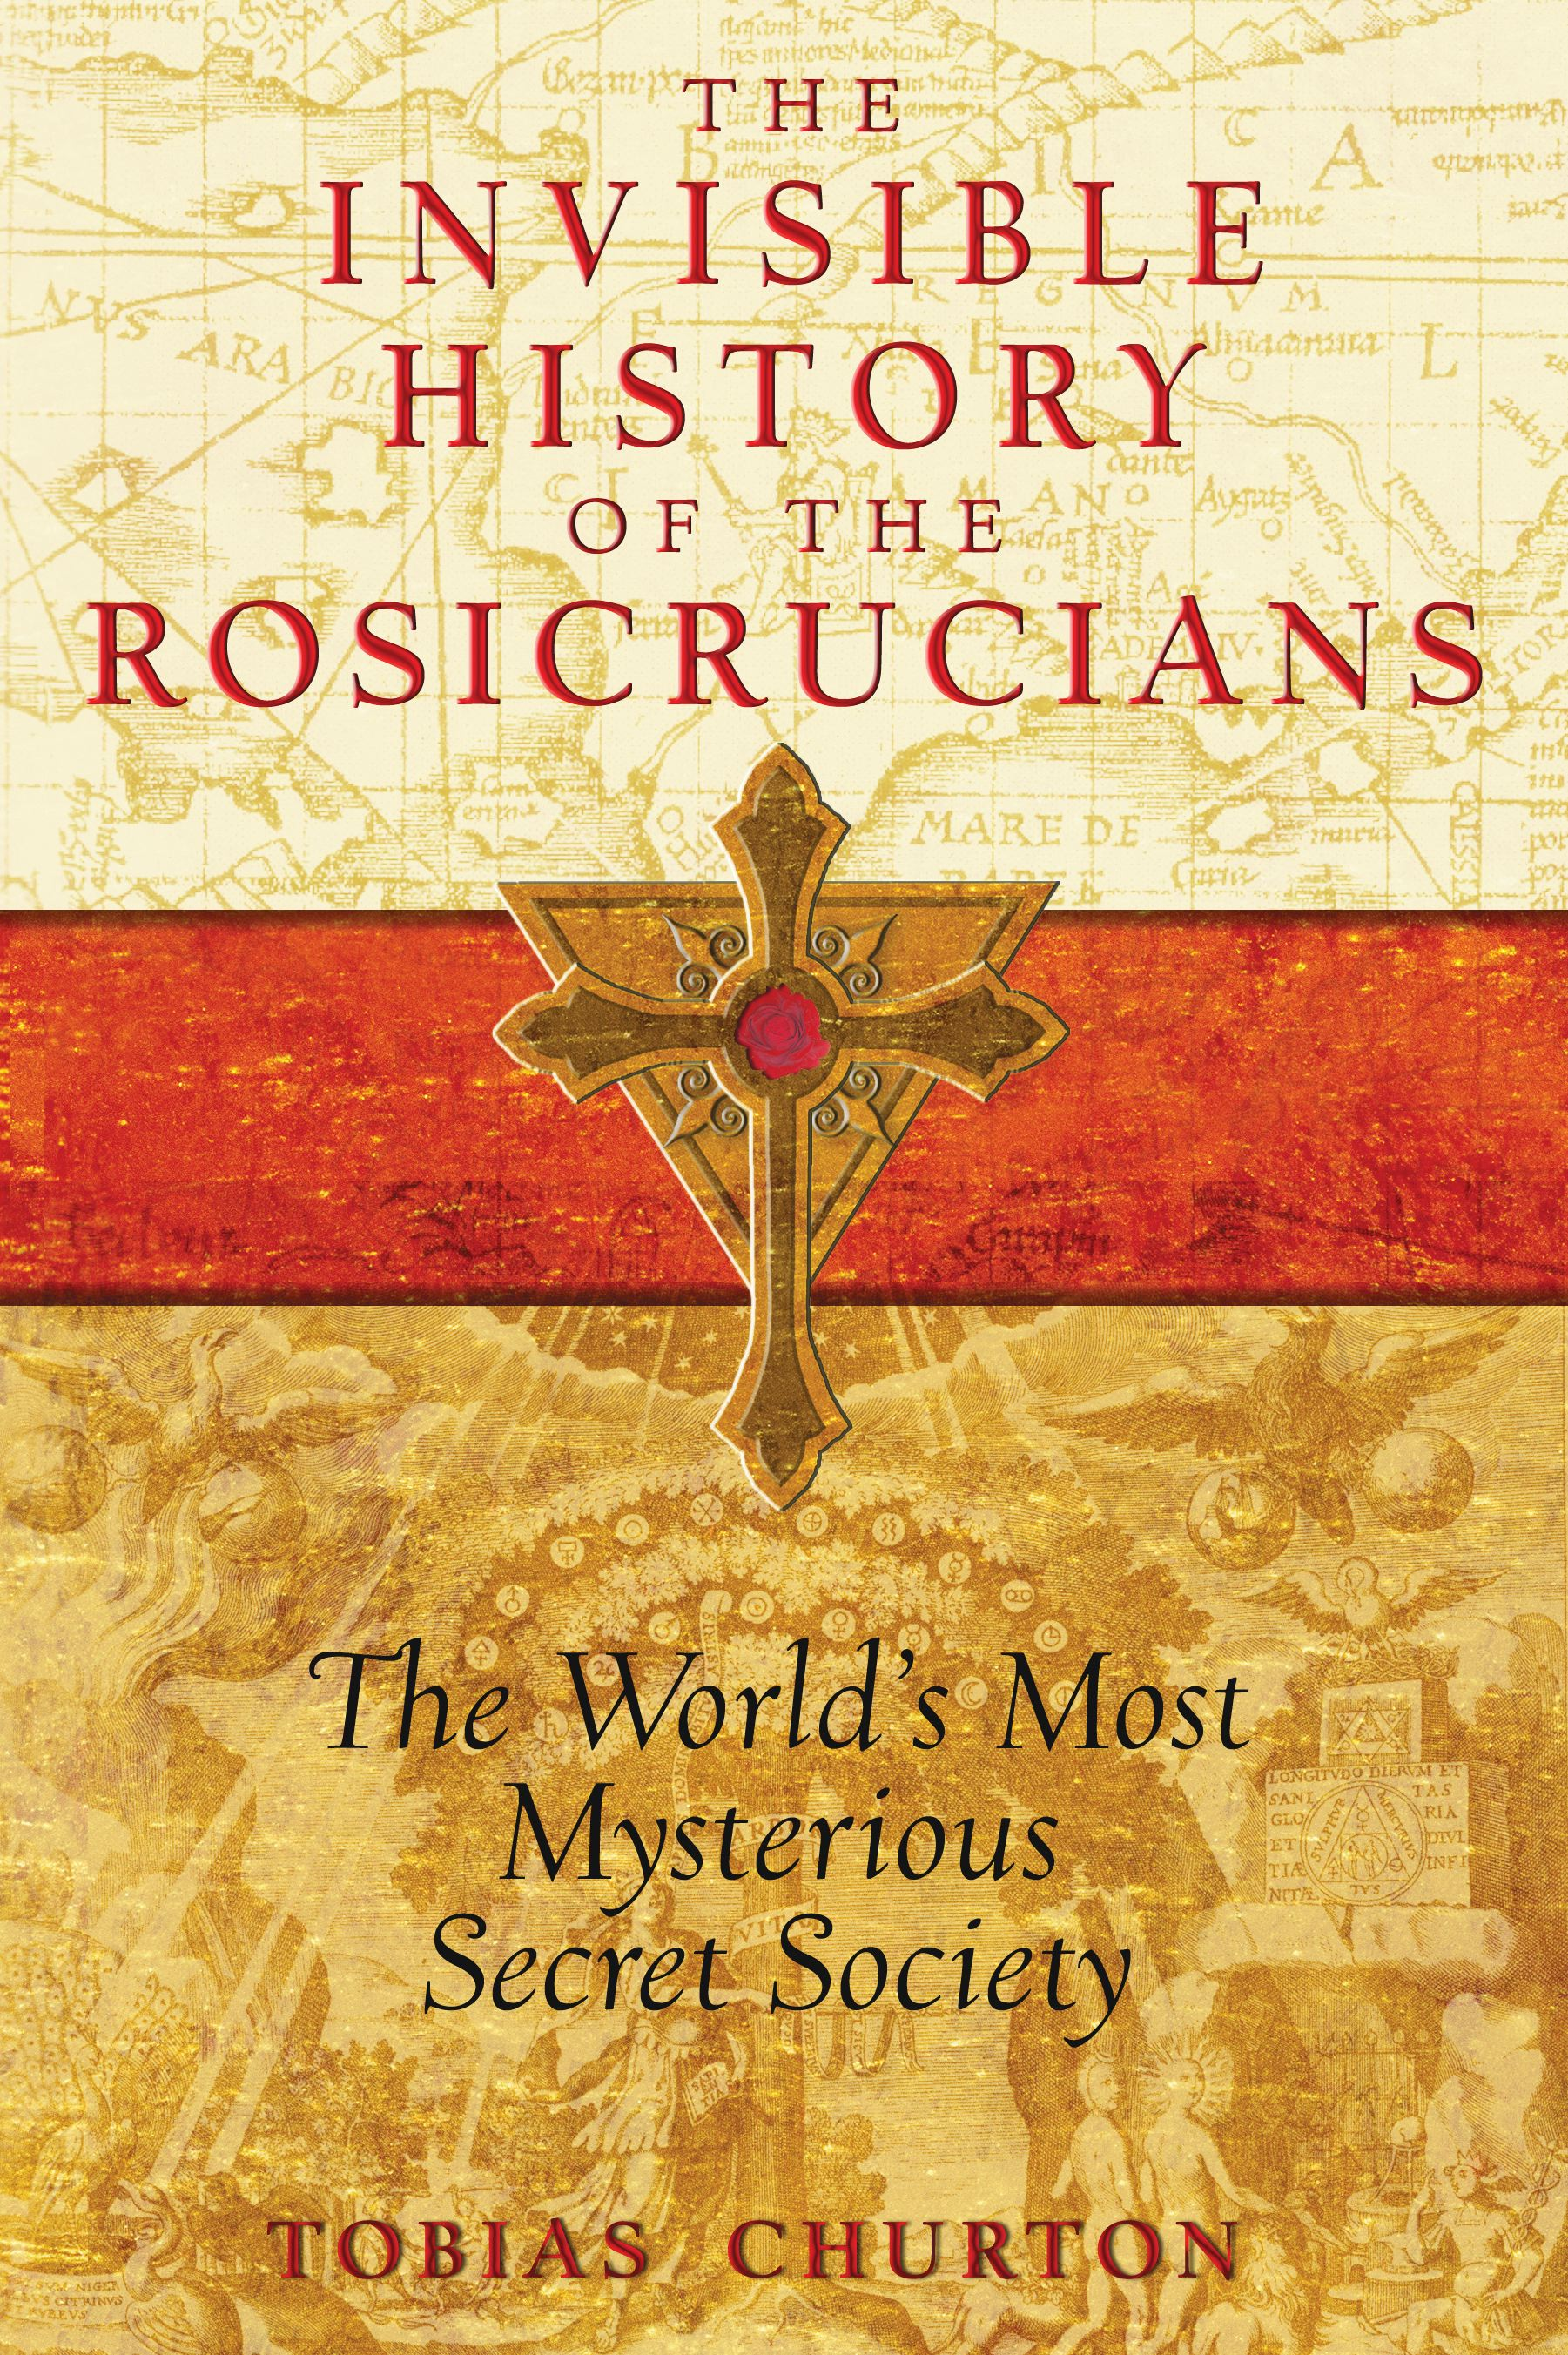 The-invisible-history-of-the-rosicrucians-9781594772559_hr